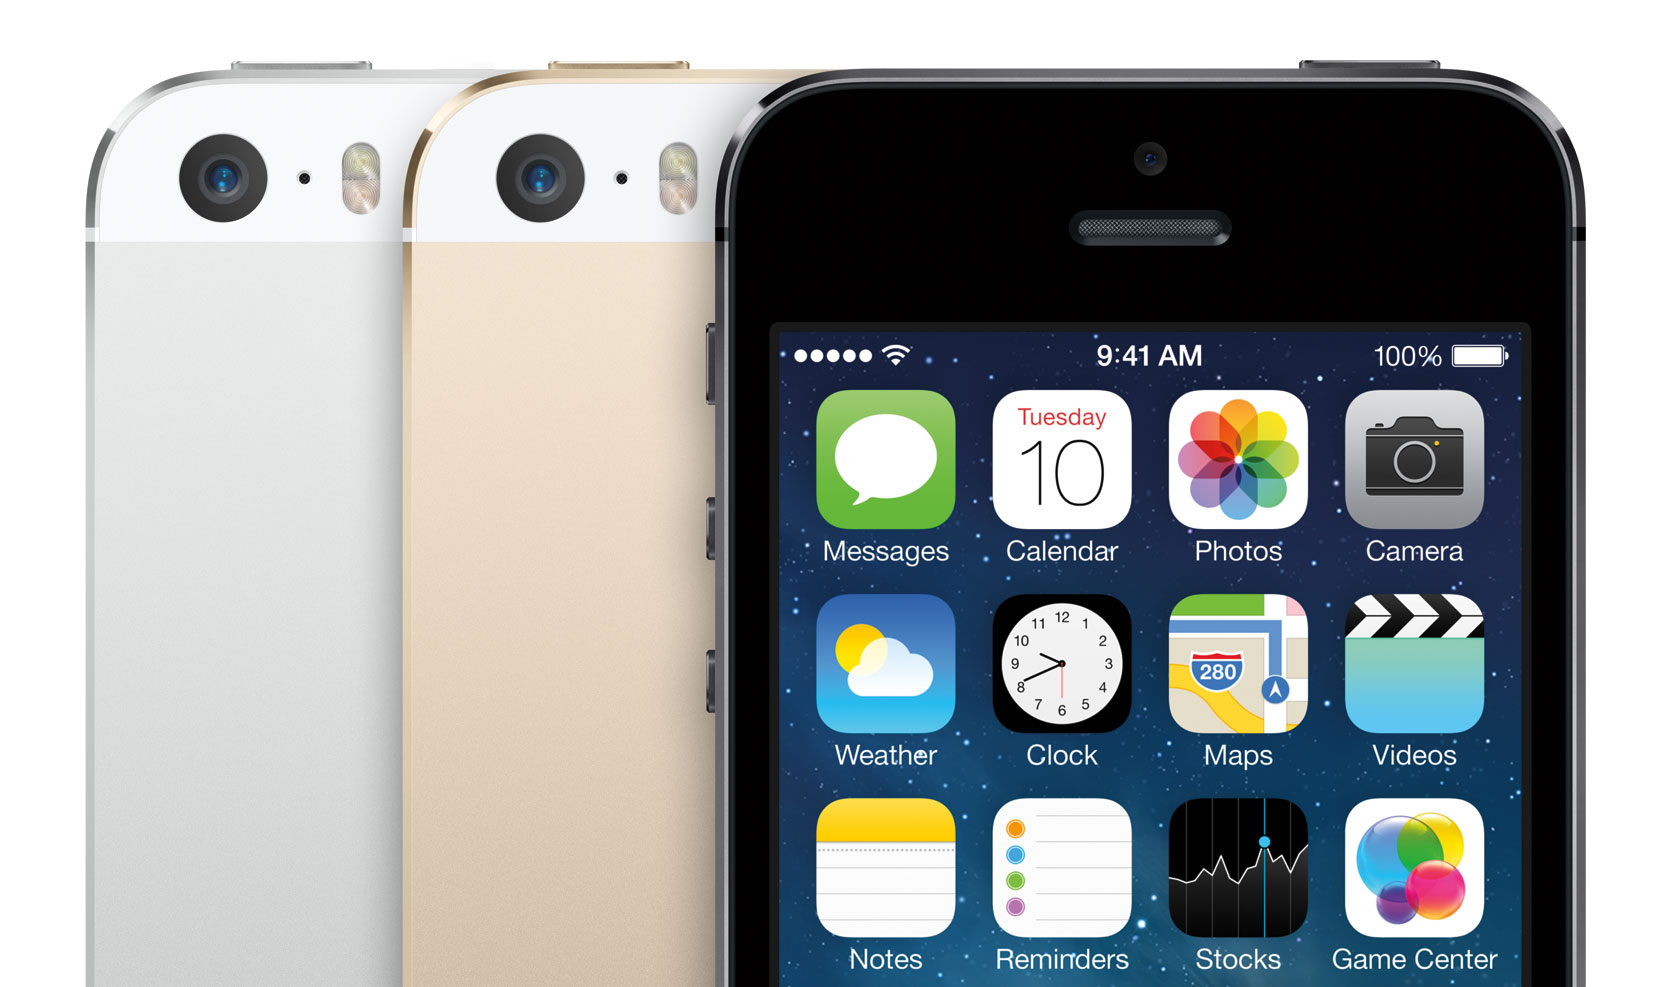 iPhone 5s: AT